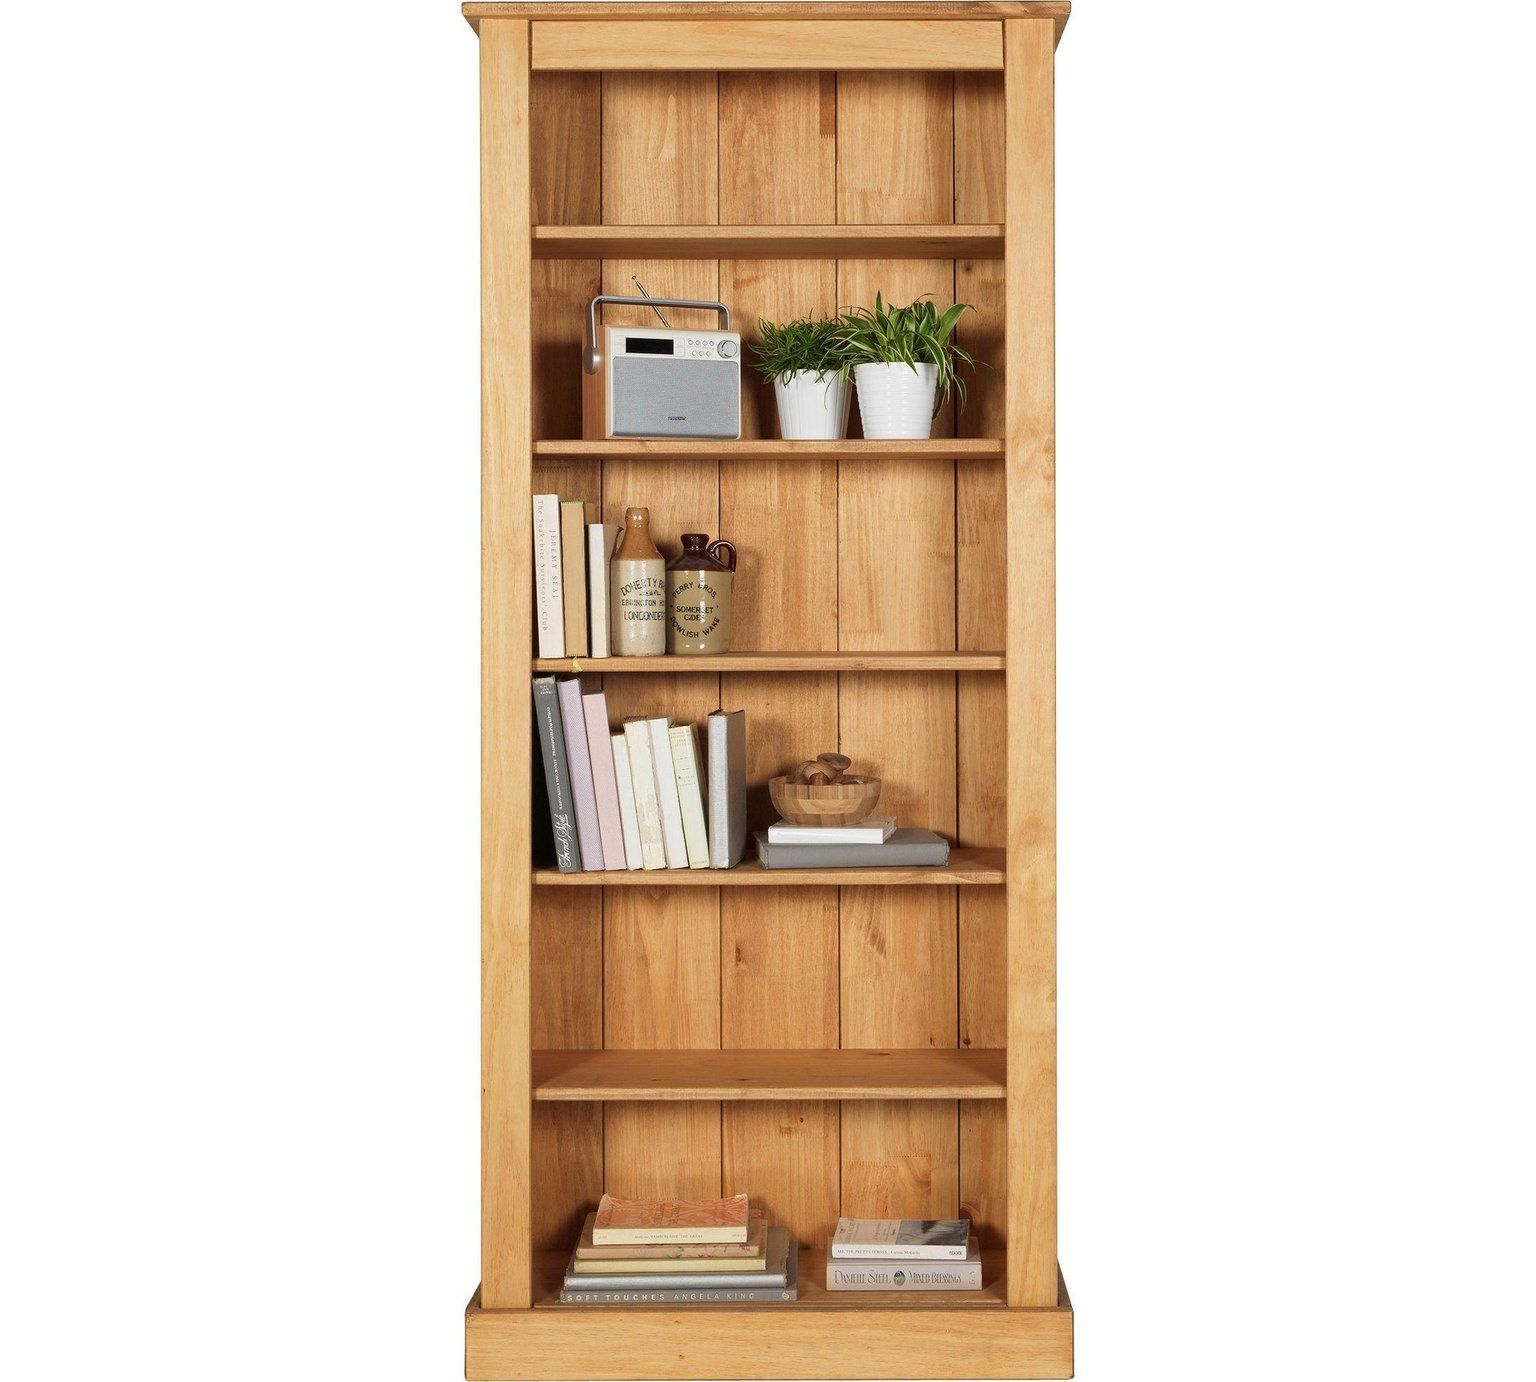 inch walmart leaning bookshelf with black bookshelves large deep decoration wide espresso short shelf shelves stackable tier white mainstays clear adjustable bookcase bamboo inexpensive